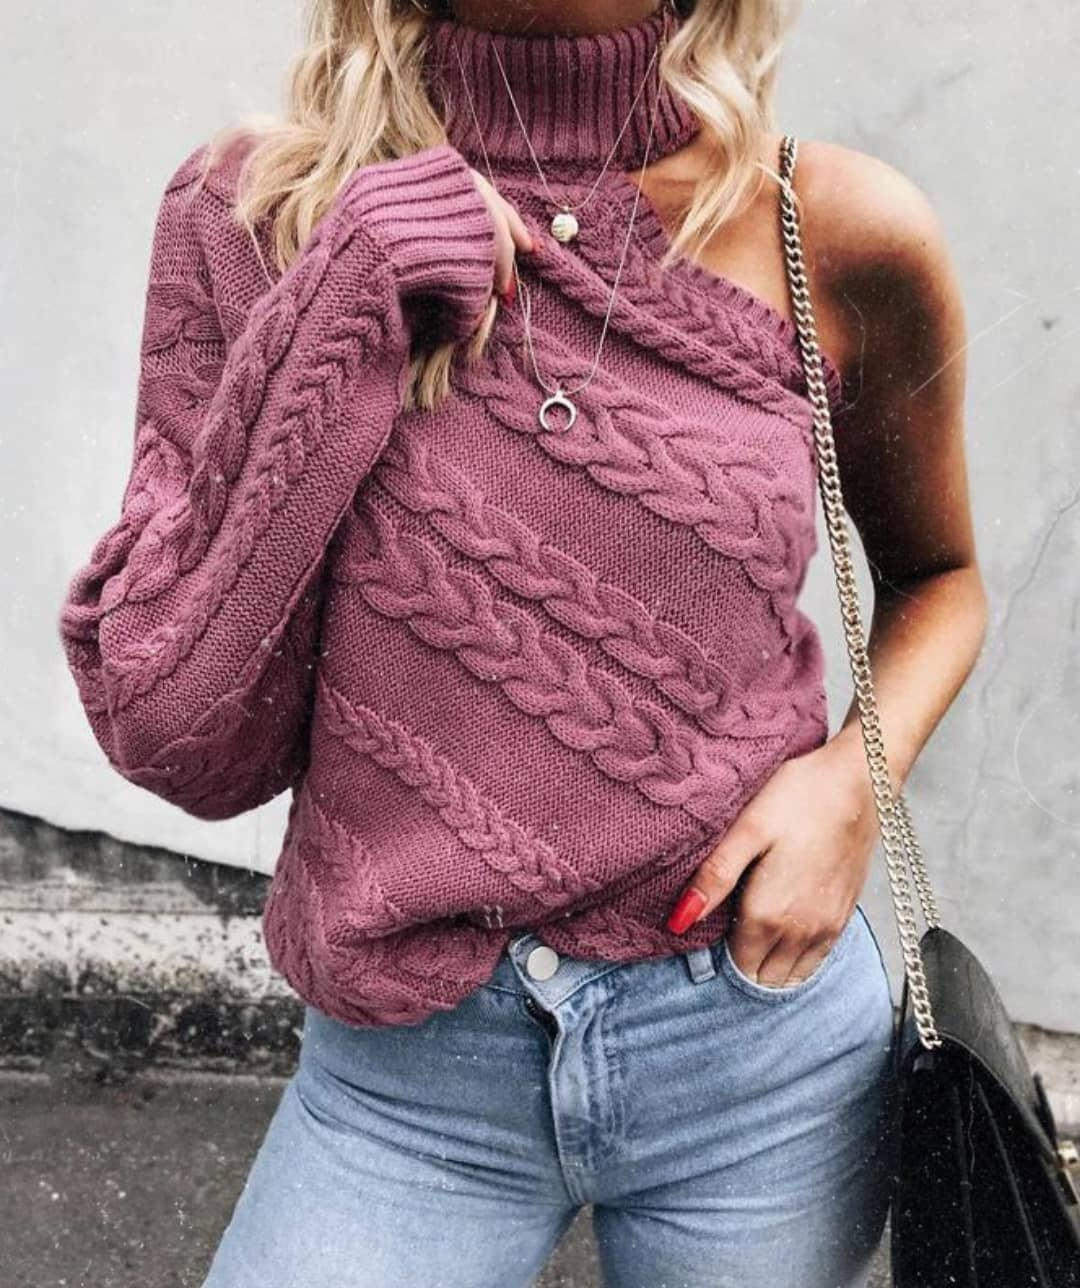 One-Sleeve Turtleneck Sweater In Pink Color For Spring Months 2019